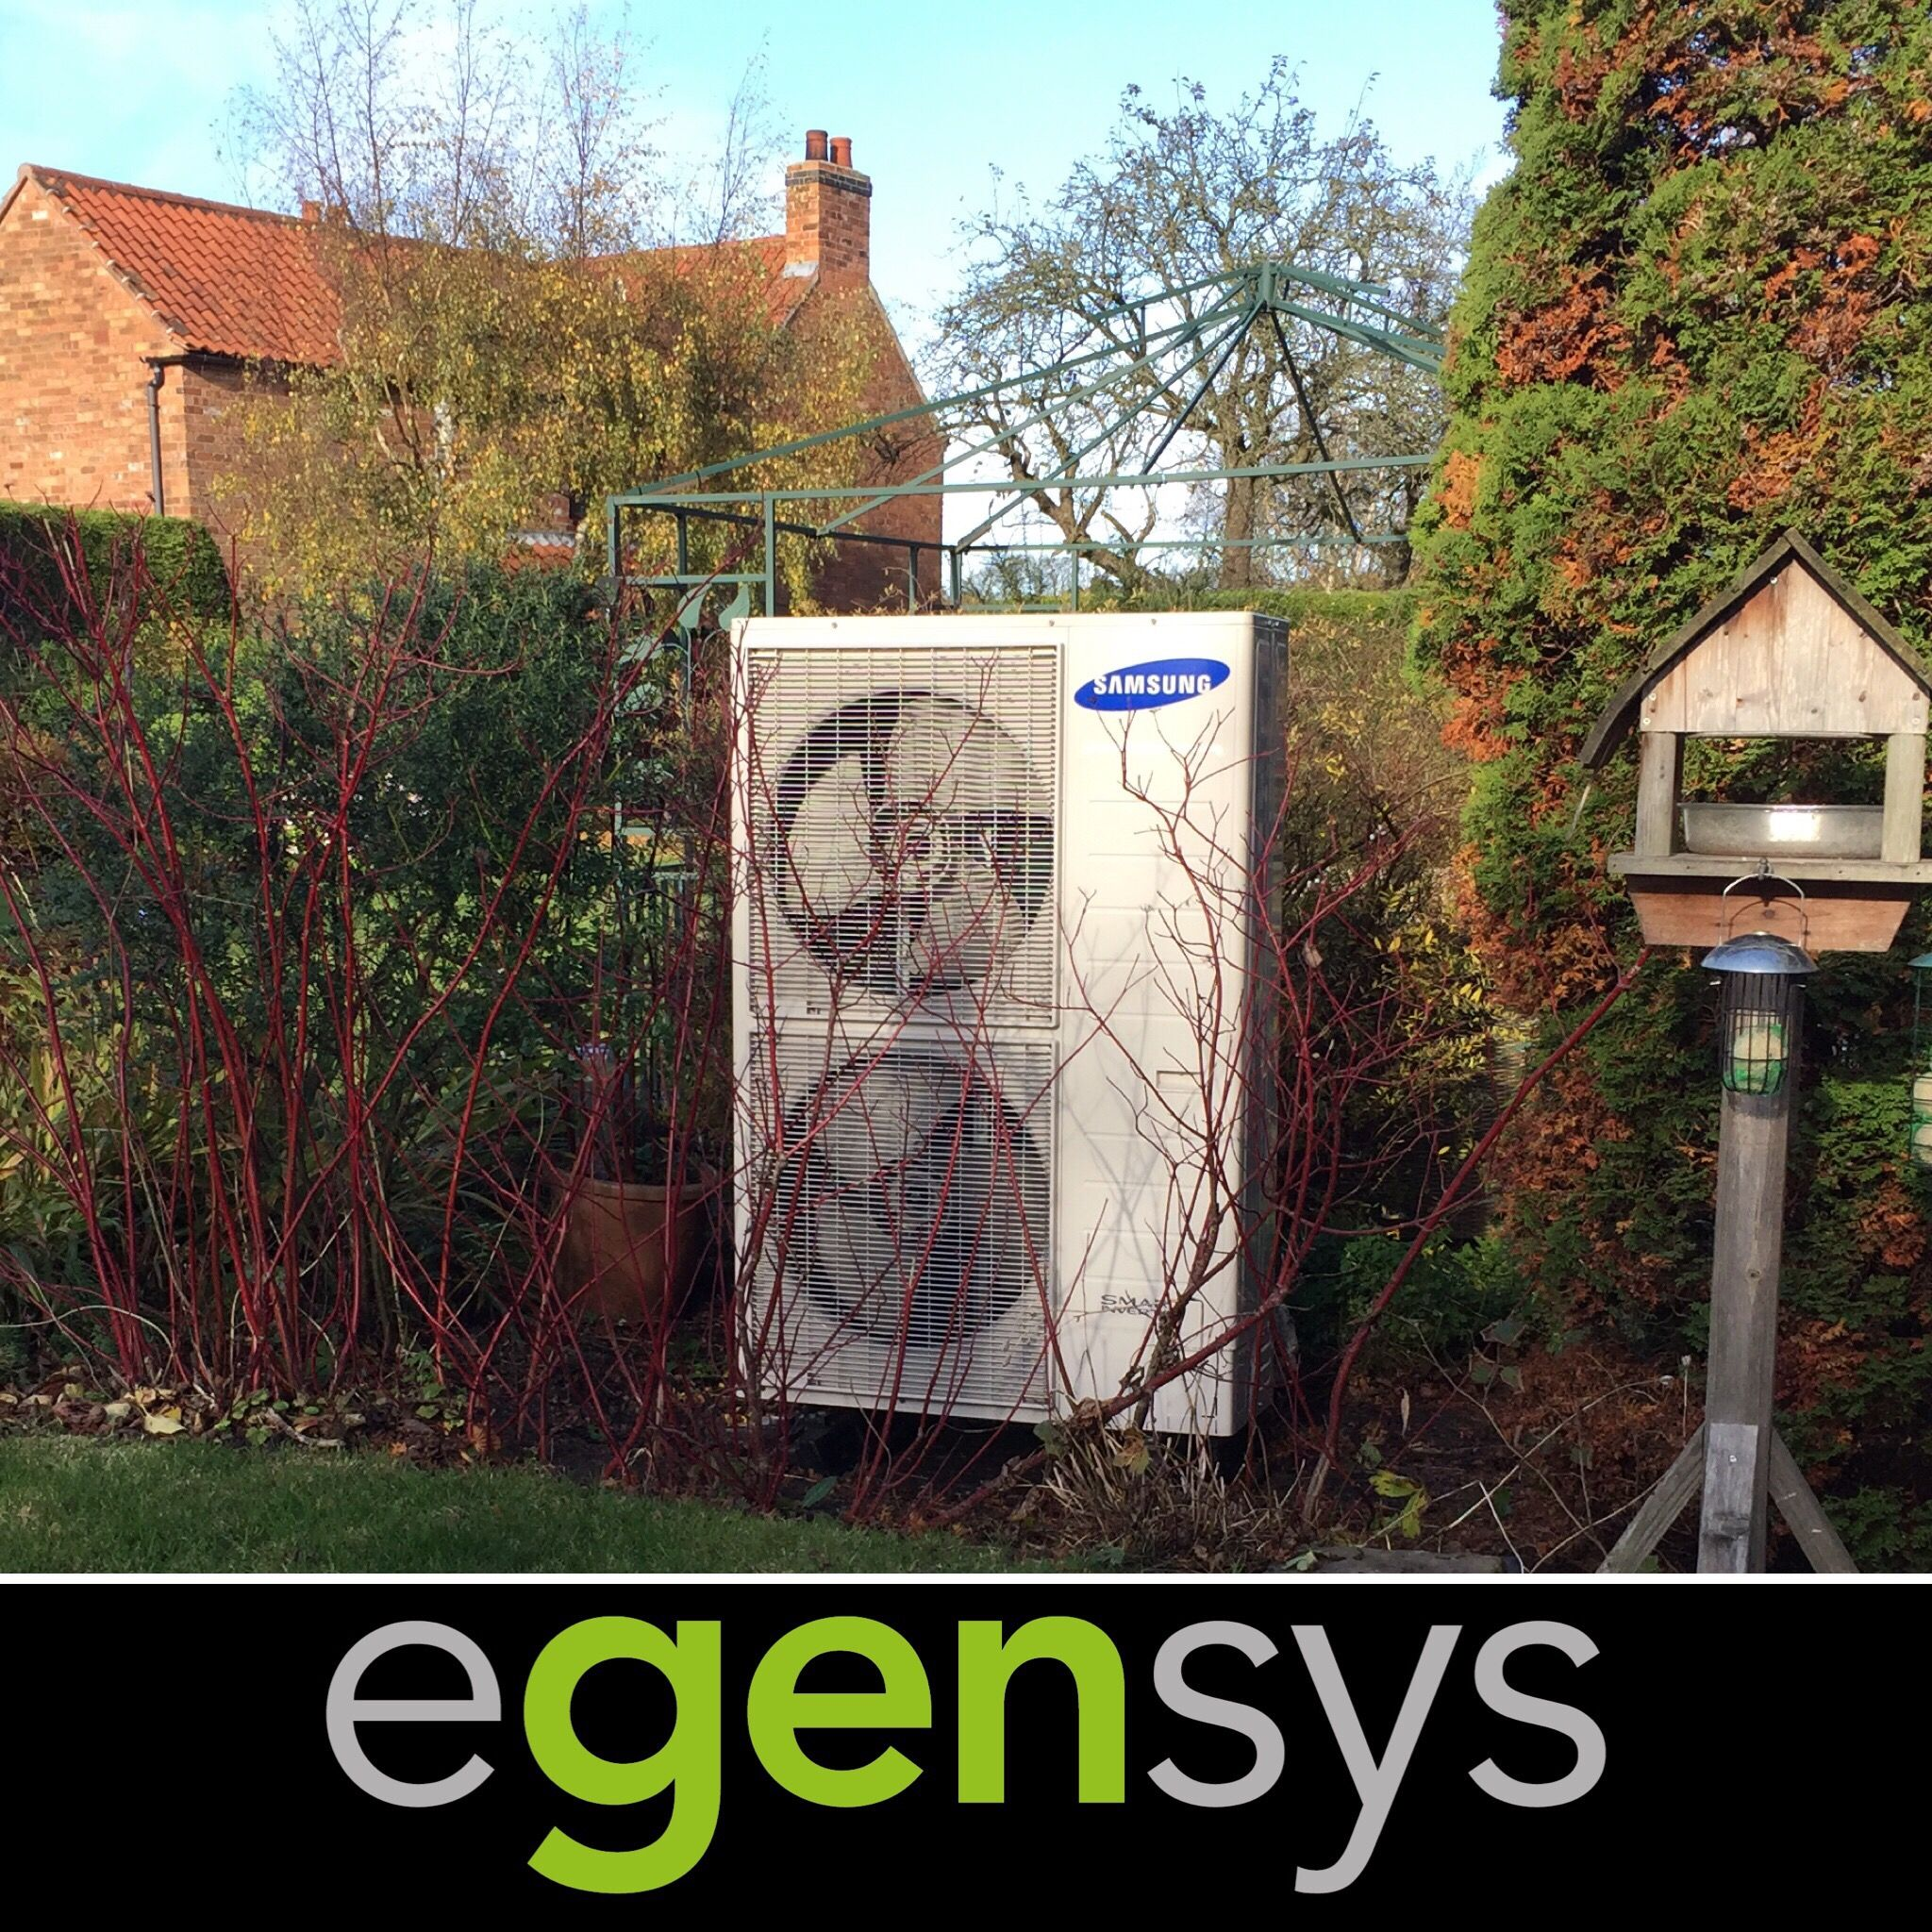 Air Source Heat Pumps like this 16kW Samsung unit extract